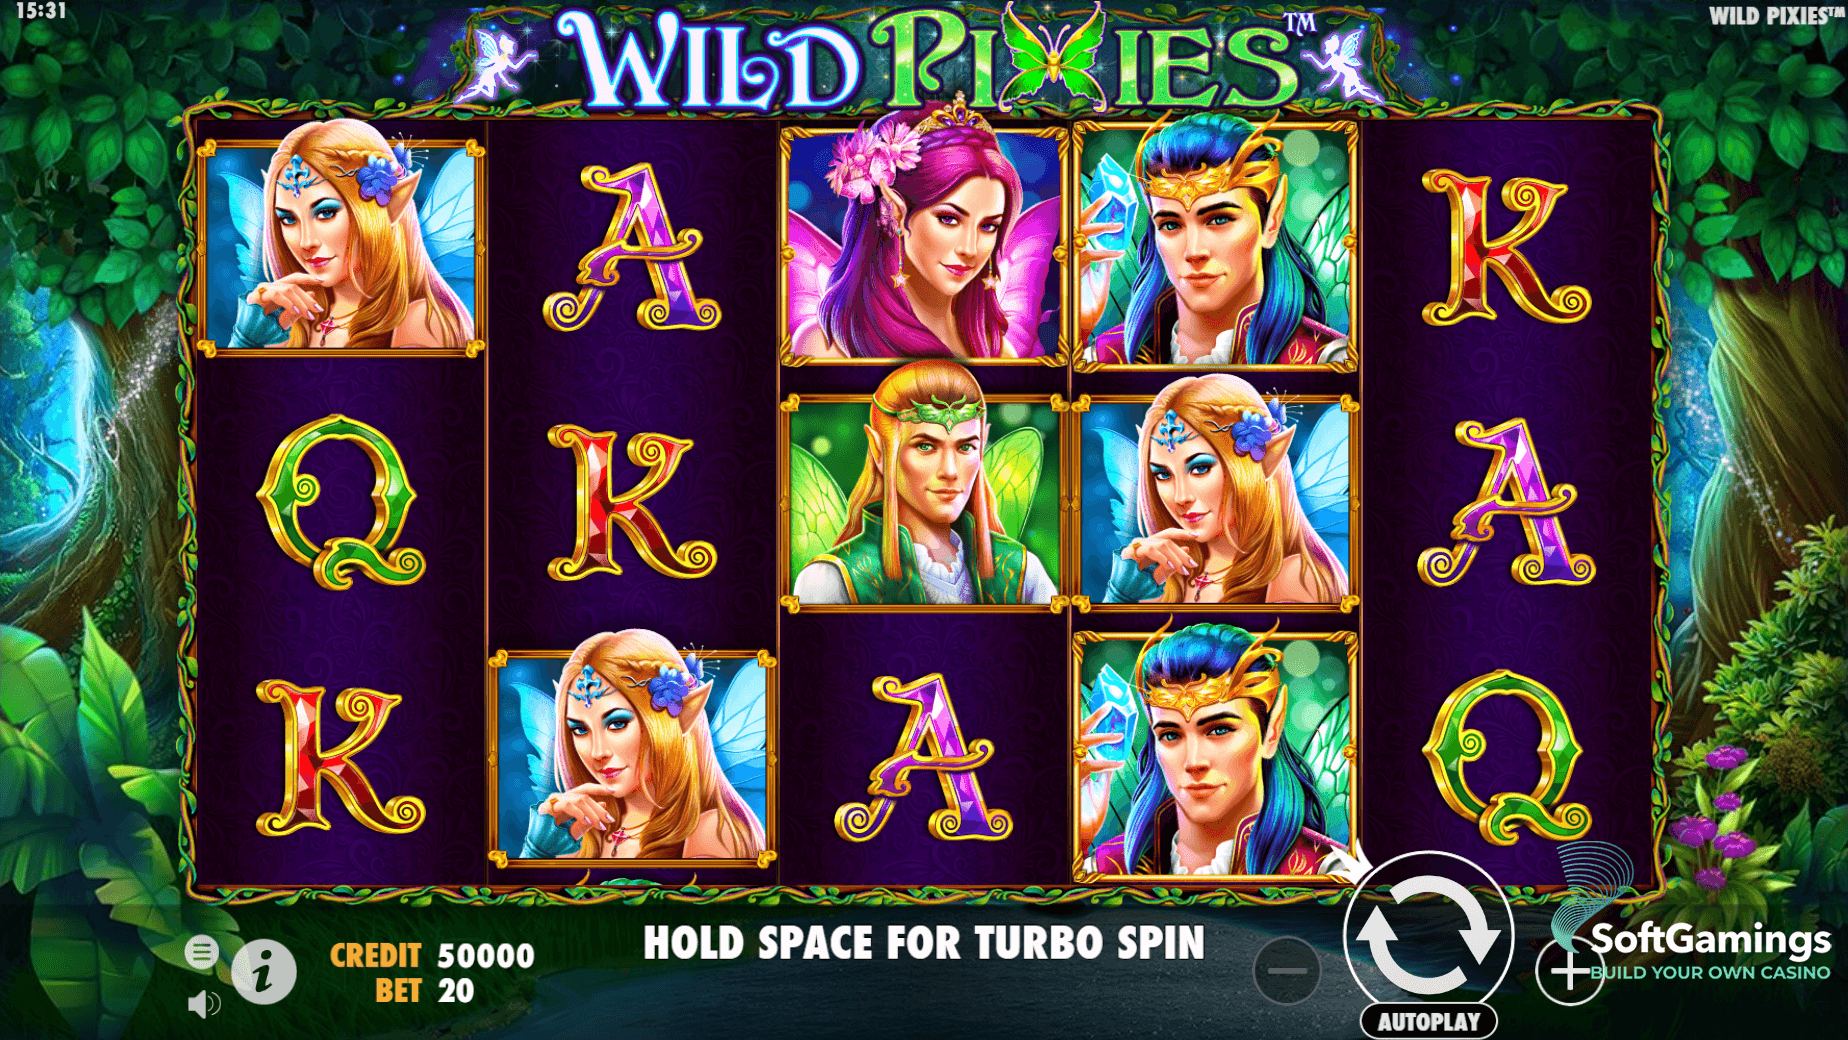 Wild Pixies Slot Game Symbols and Winning Combinations